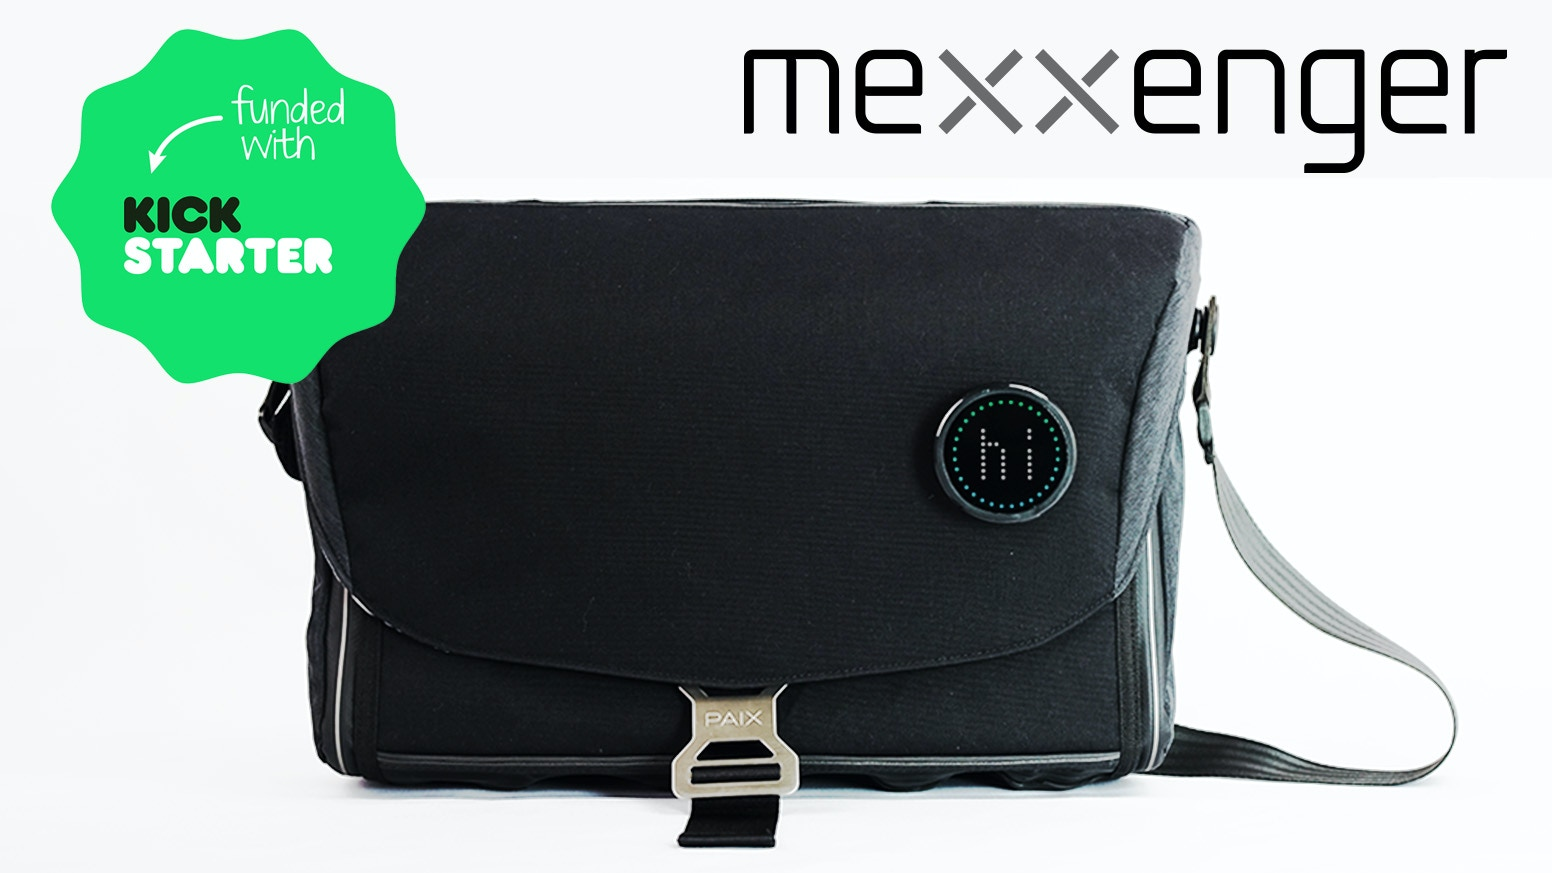 Merging design, tech, and functionality to create a versatile messenger bag for the modern age.